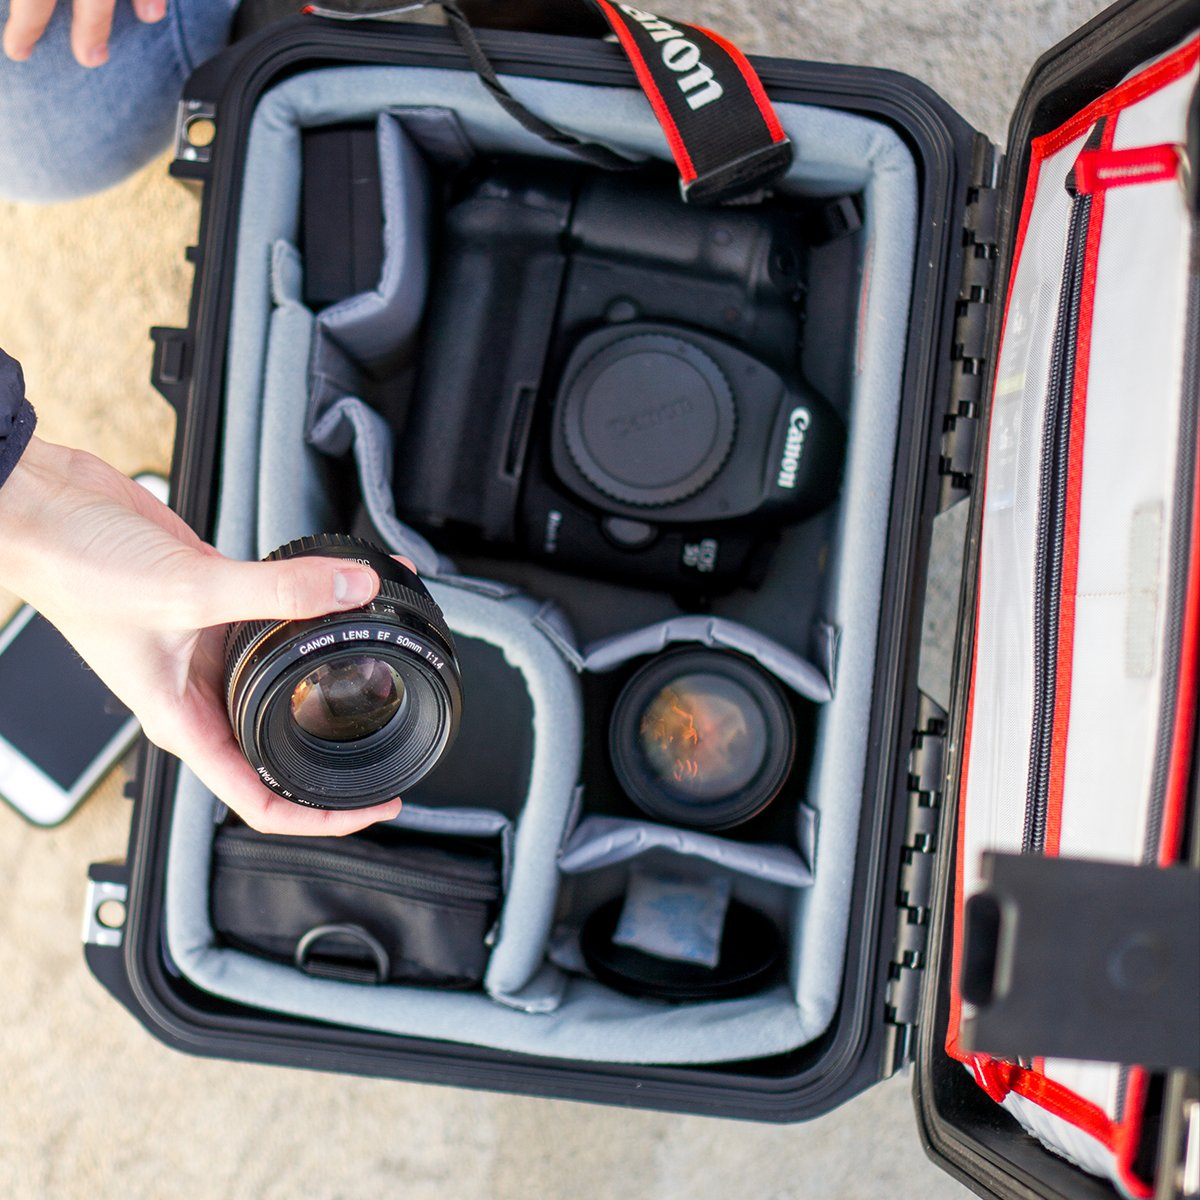 Thousands of #photographers are experiencing the SKB difference. If you want a case that's lightweight, durable, and guaranteed for life, start browsing now: bit.ly/SKB_PhotoVideo